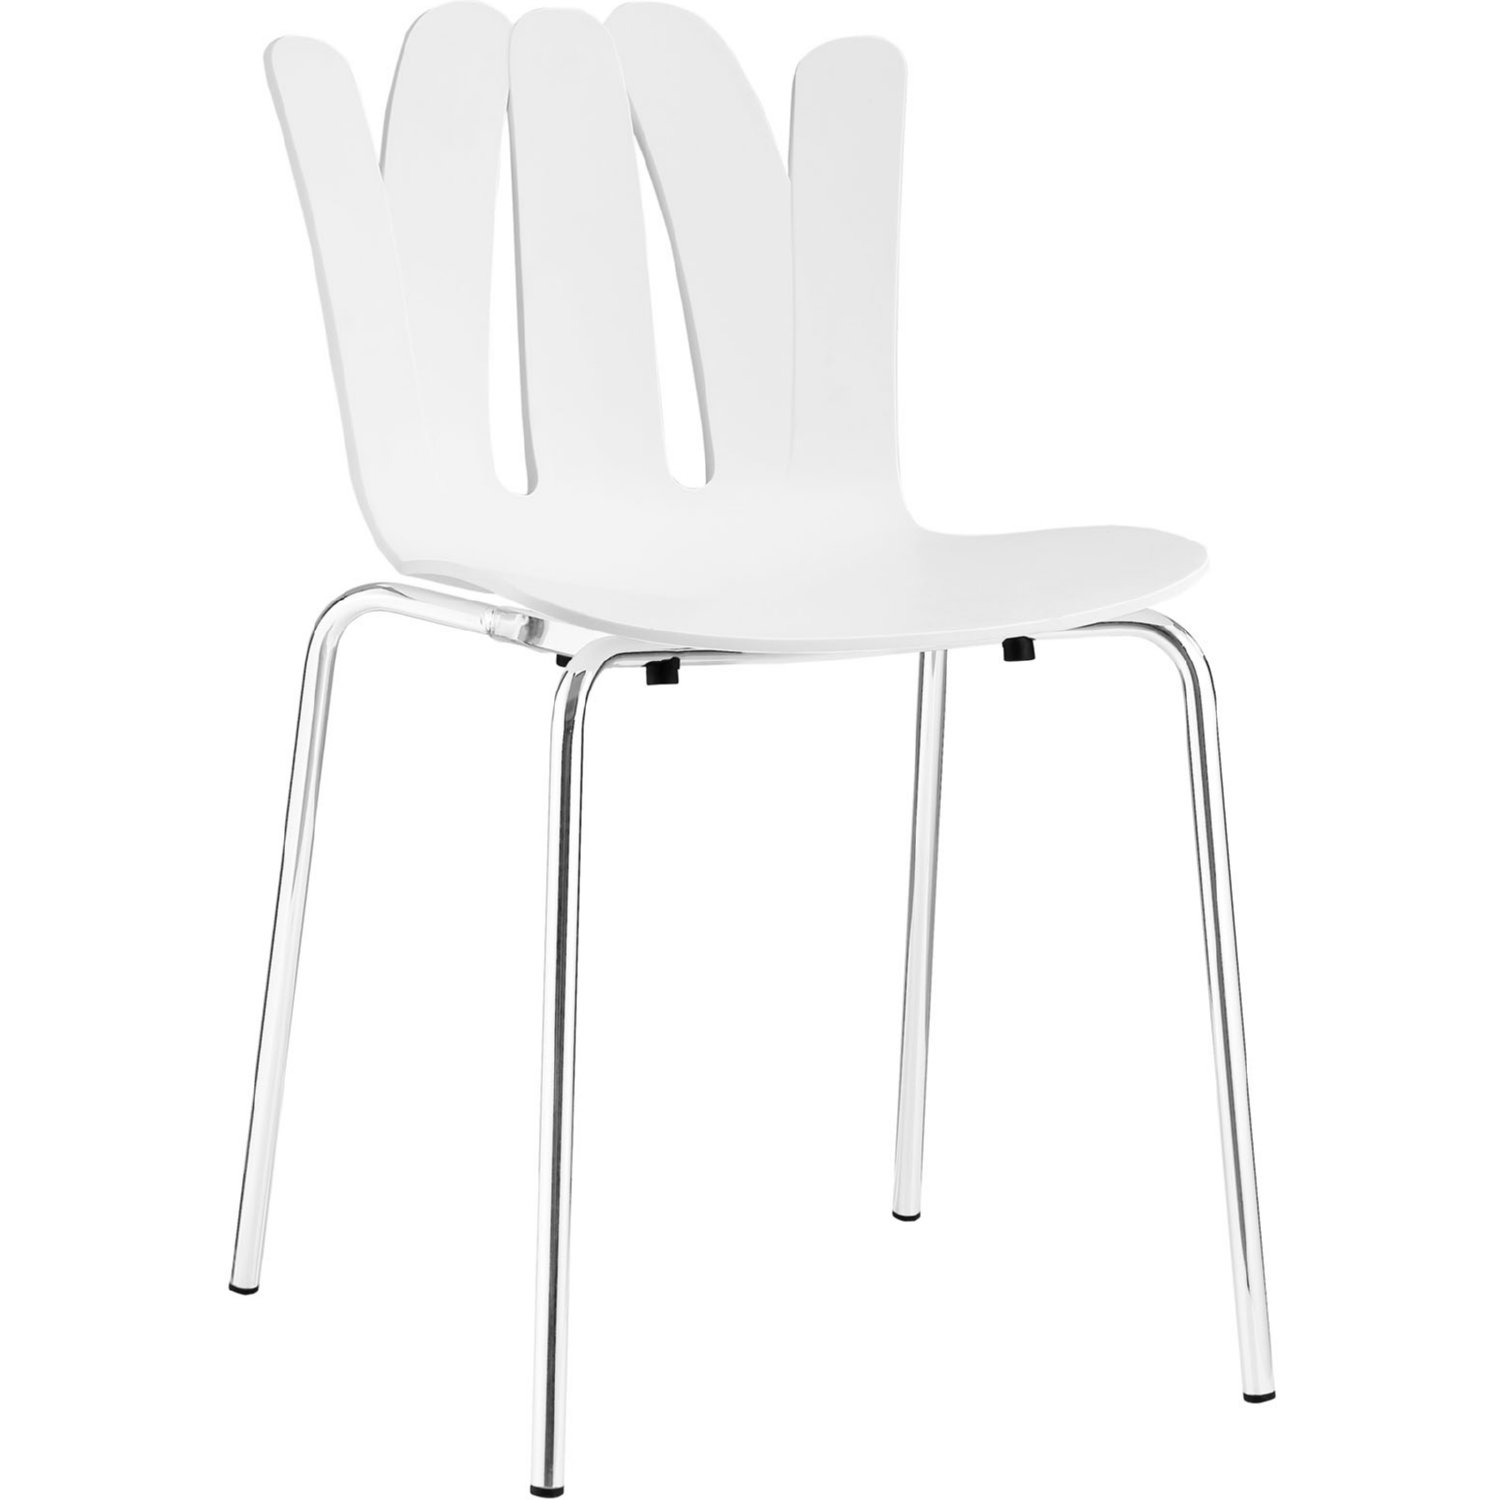 Modway EEI 1496 WHI Flare Dining Chair In White Molded Seat U0026 Open Pattern  Back On Chrome Legs